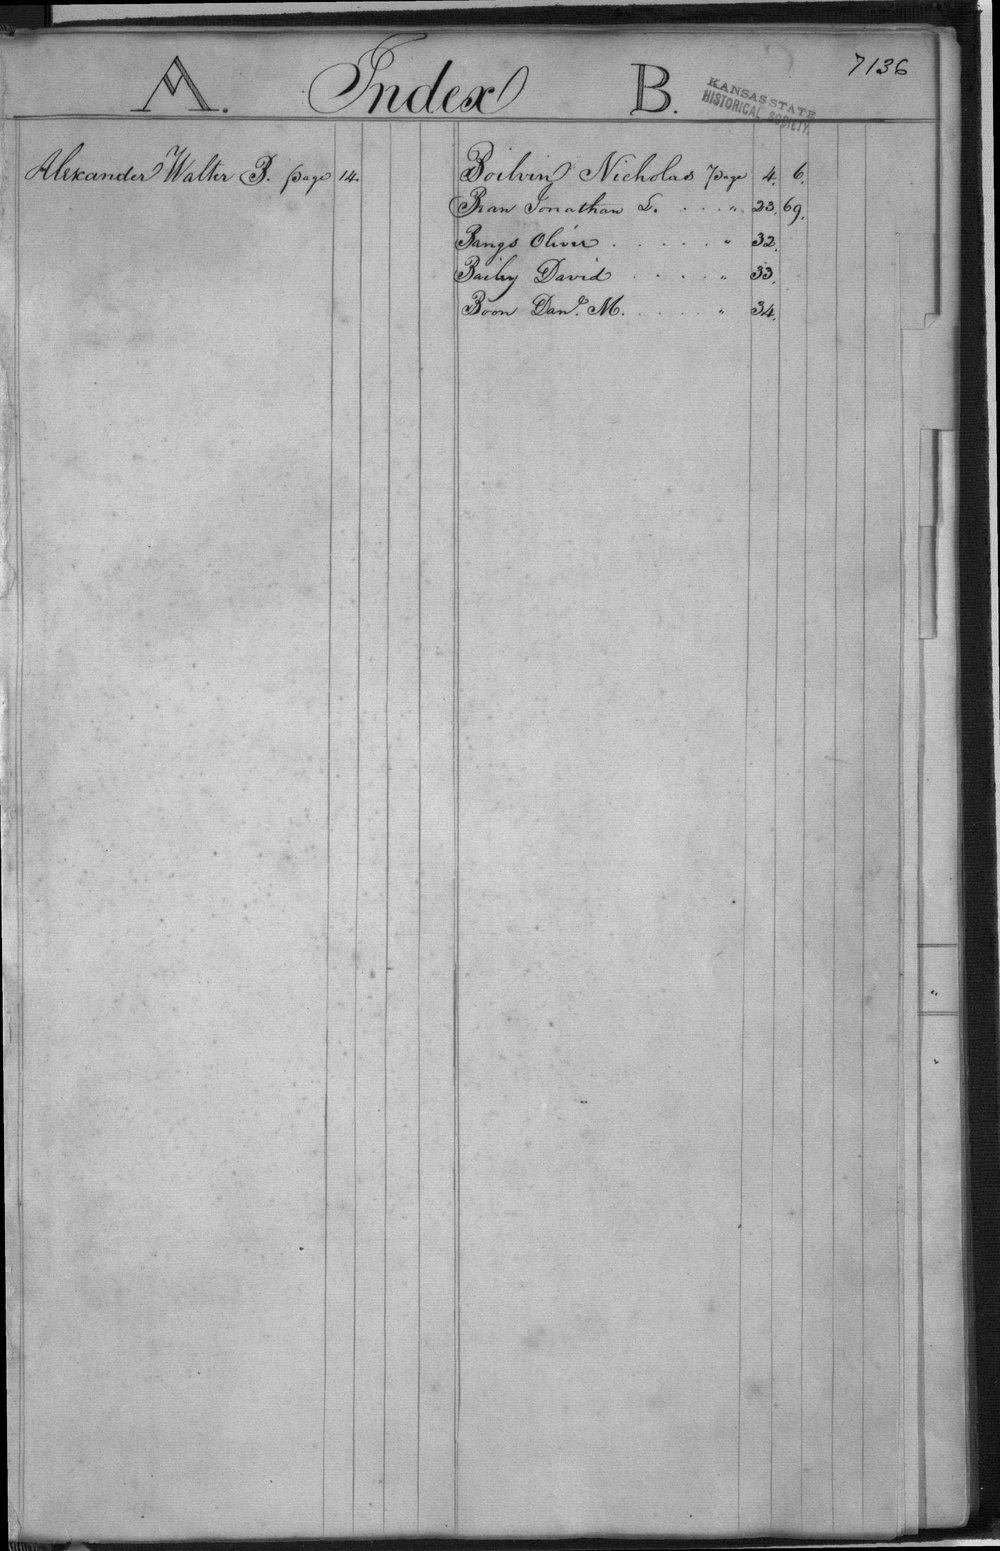 United States Office of Indian Affairs, Central Superintendency, St. Louis, Missouri. Volume 26, Accounts - Index A B